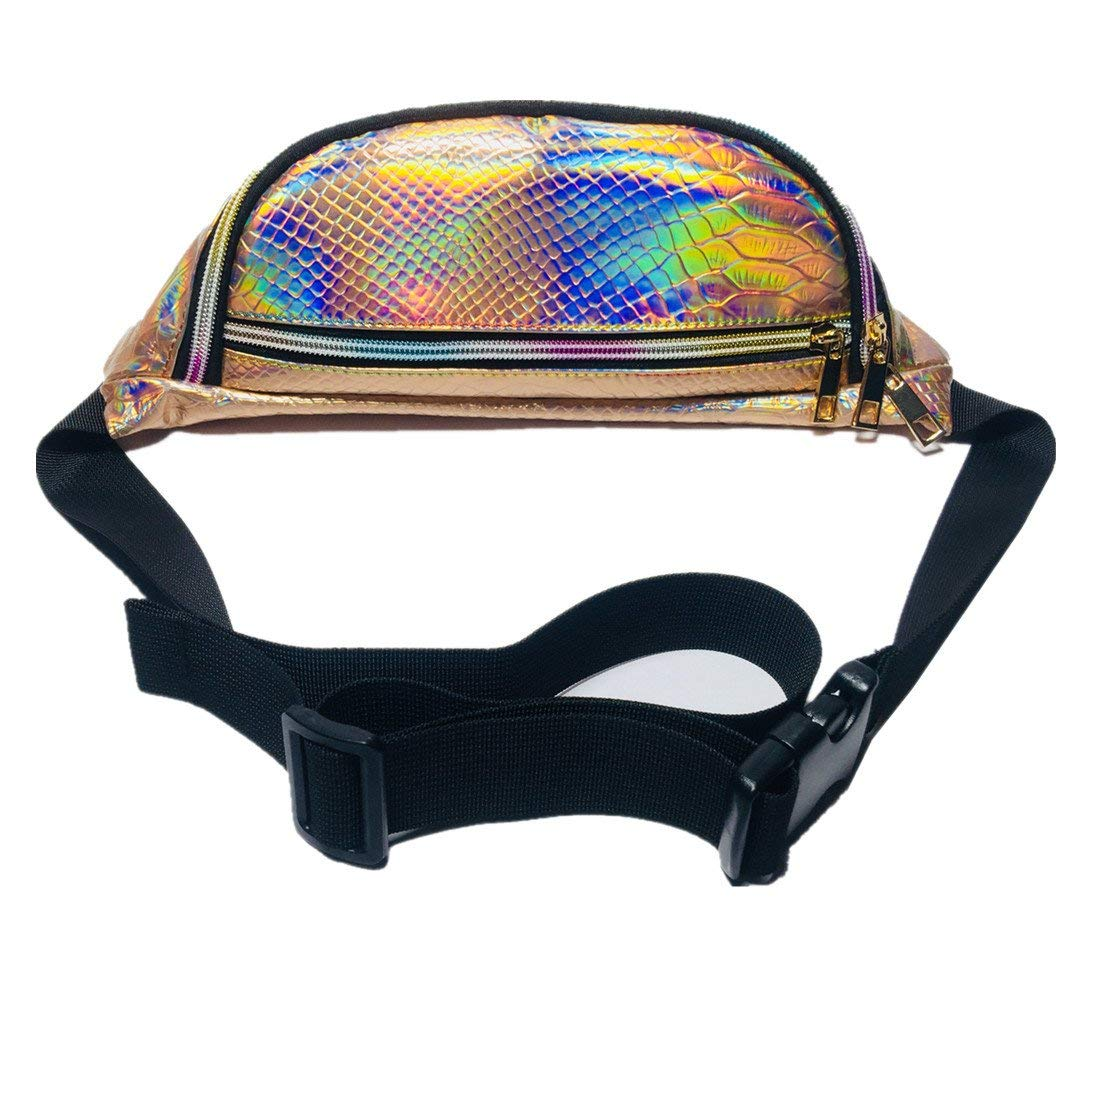 Andear Bumbag Shiny Holographic Fanny Pack Sports Hiking Running Belt Waist Bag